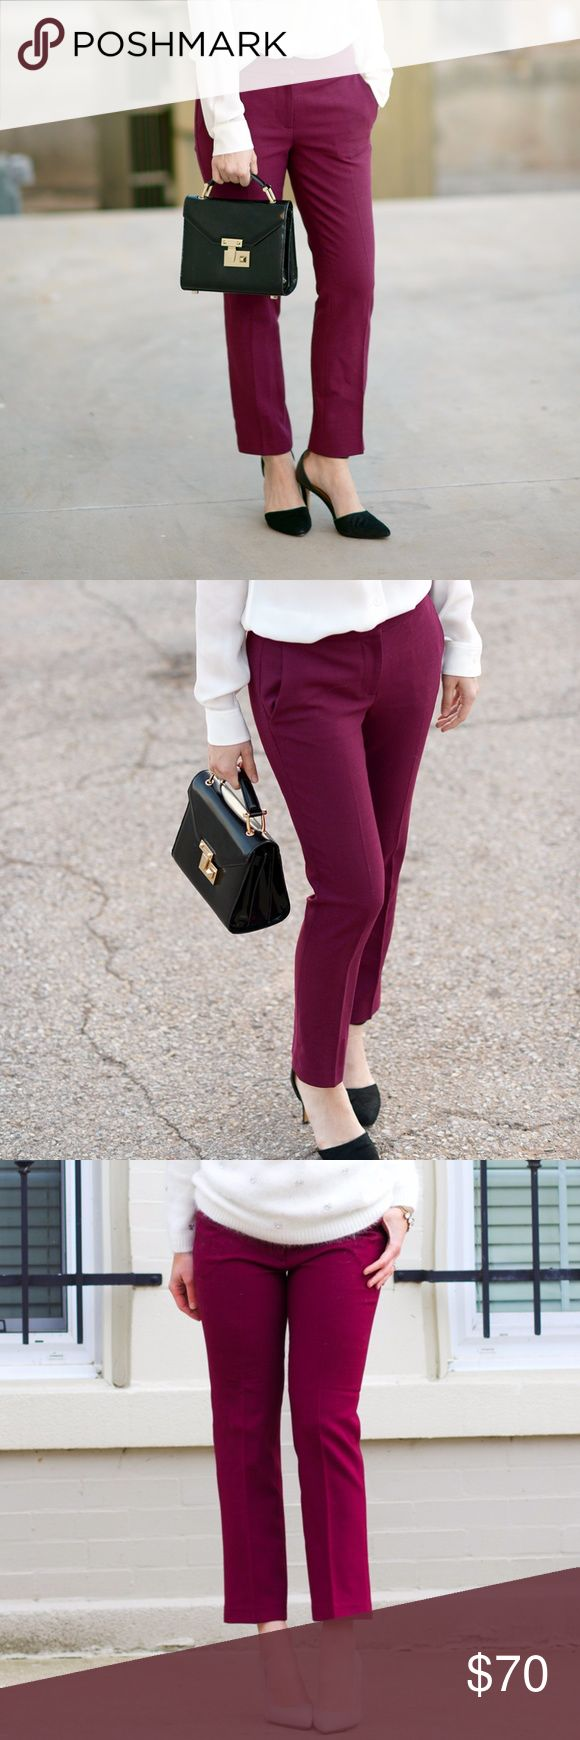 """J.CREW Campbell Capri Pant Bi-Stretch Wool Wine J.CREW Campbell Capri Pant in Bi-Stretch Wool Pinot Wine Sz 6  Original retail: $118  Description: The """"where'd you get that pant"""" pant—it has the perfect amount of stretch, a little kick at the hem and looks good on just about everyone. Expect compliments from friends, coworkers and probably complete strangers.  Wool/viscose/poly/elastane. Dry clean. Import. Item B0703. Sits just above hip. Fitted through hip and thigh, with a straight…"""